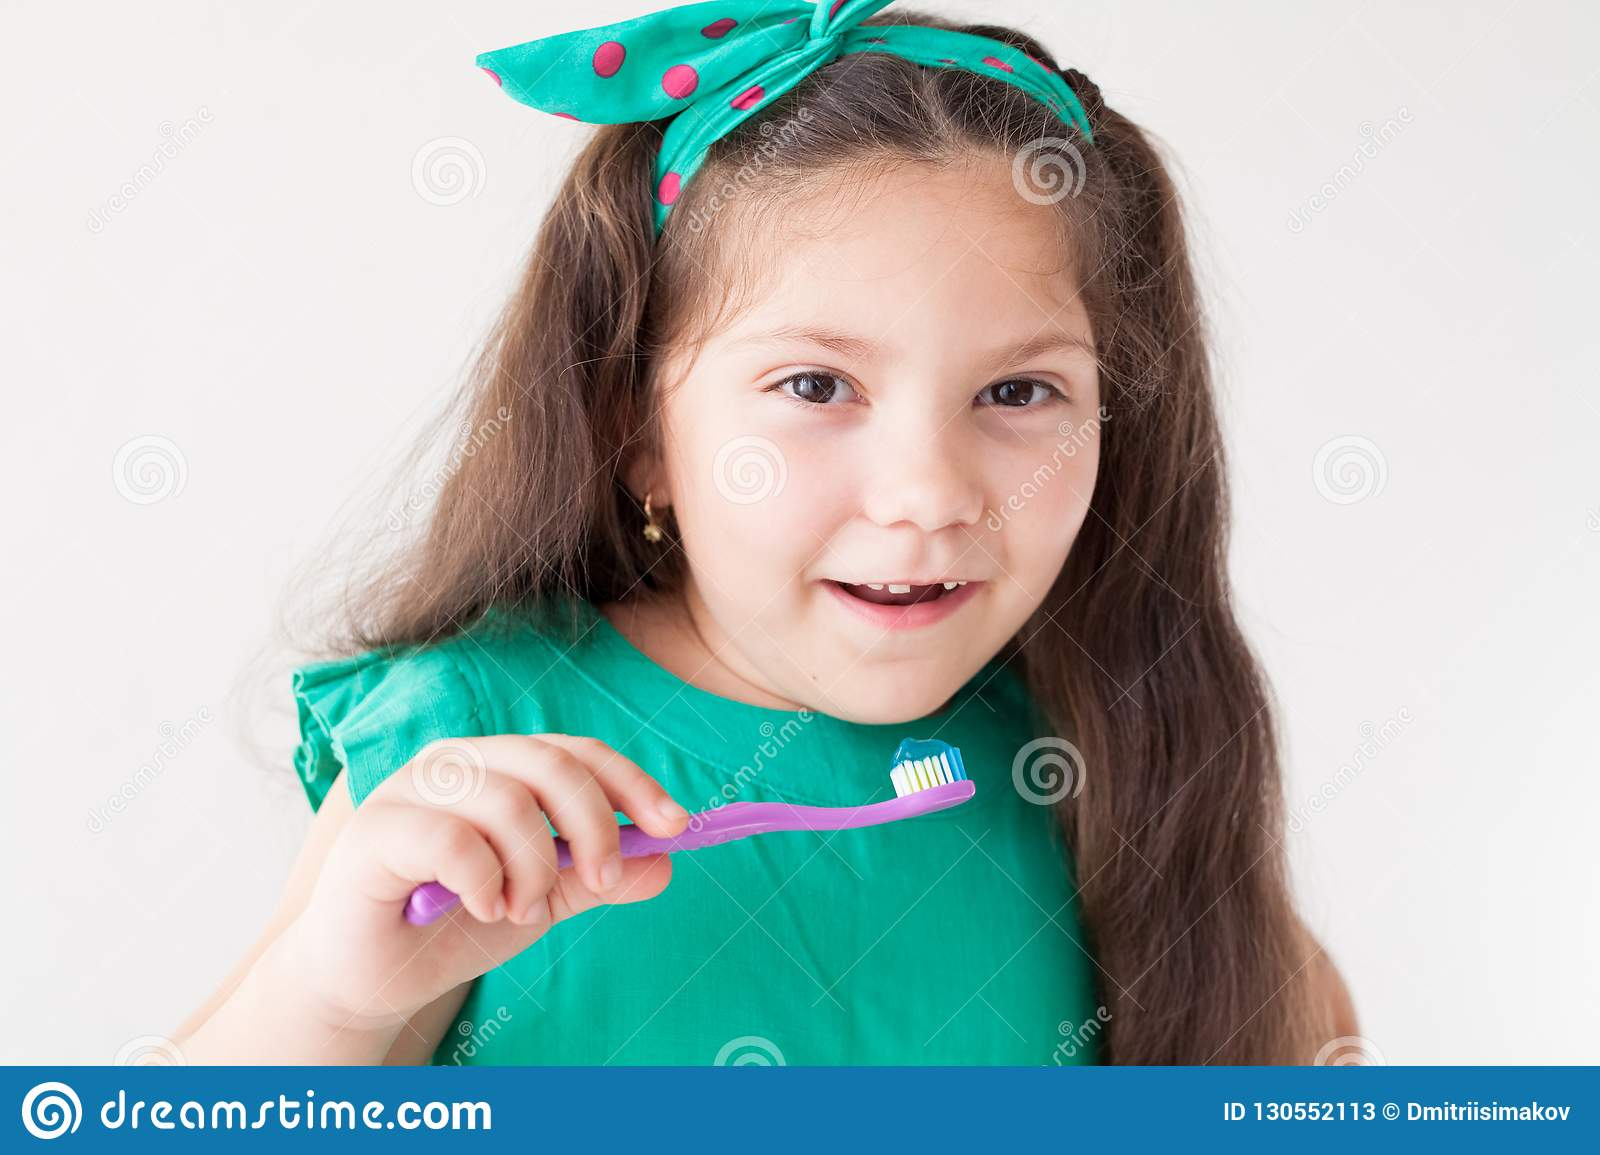 Little girl with no teeth with a toothbrush in dentistry